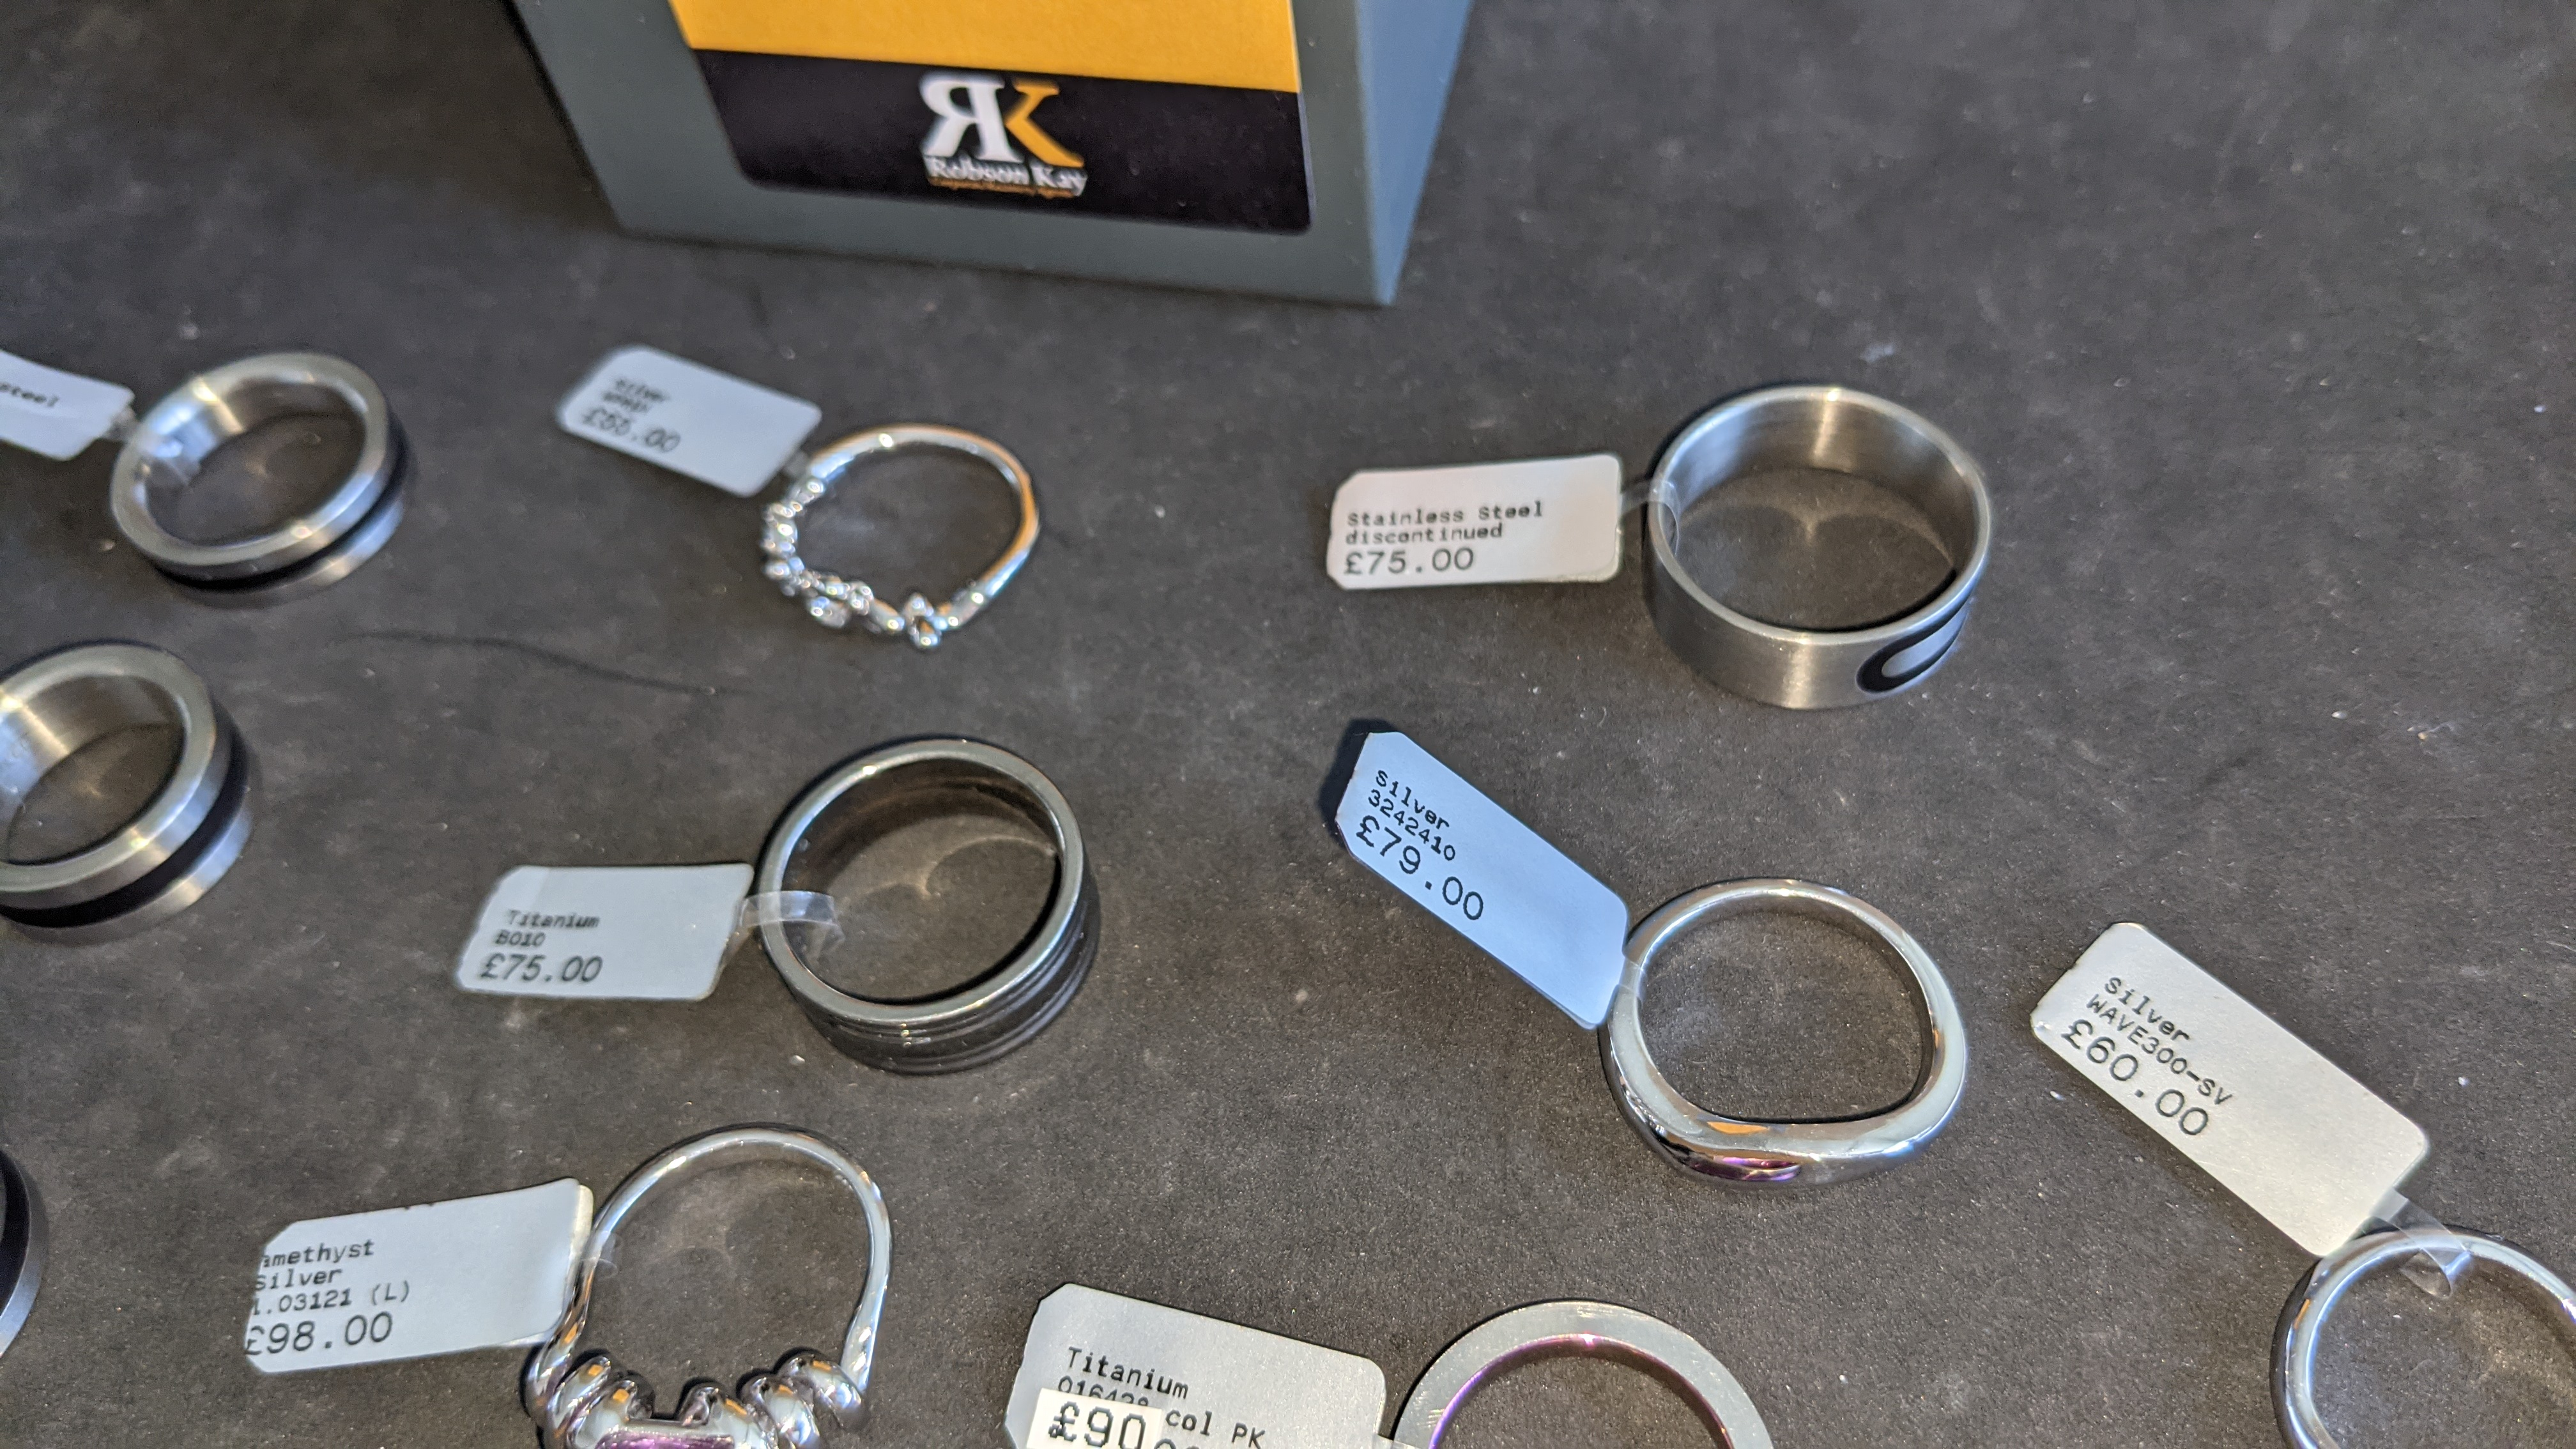 10 off assorted rings in a variety of styles, colours & finishes with RRPs from £55 - £98 per ring. - Image 7 of 13